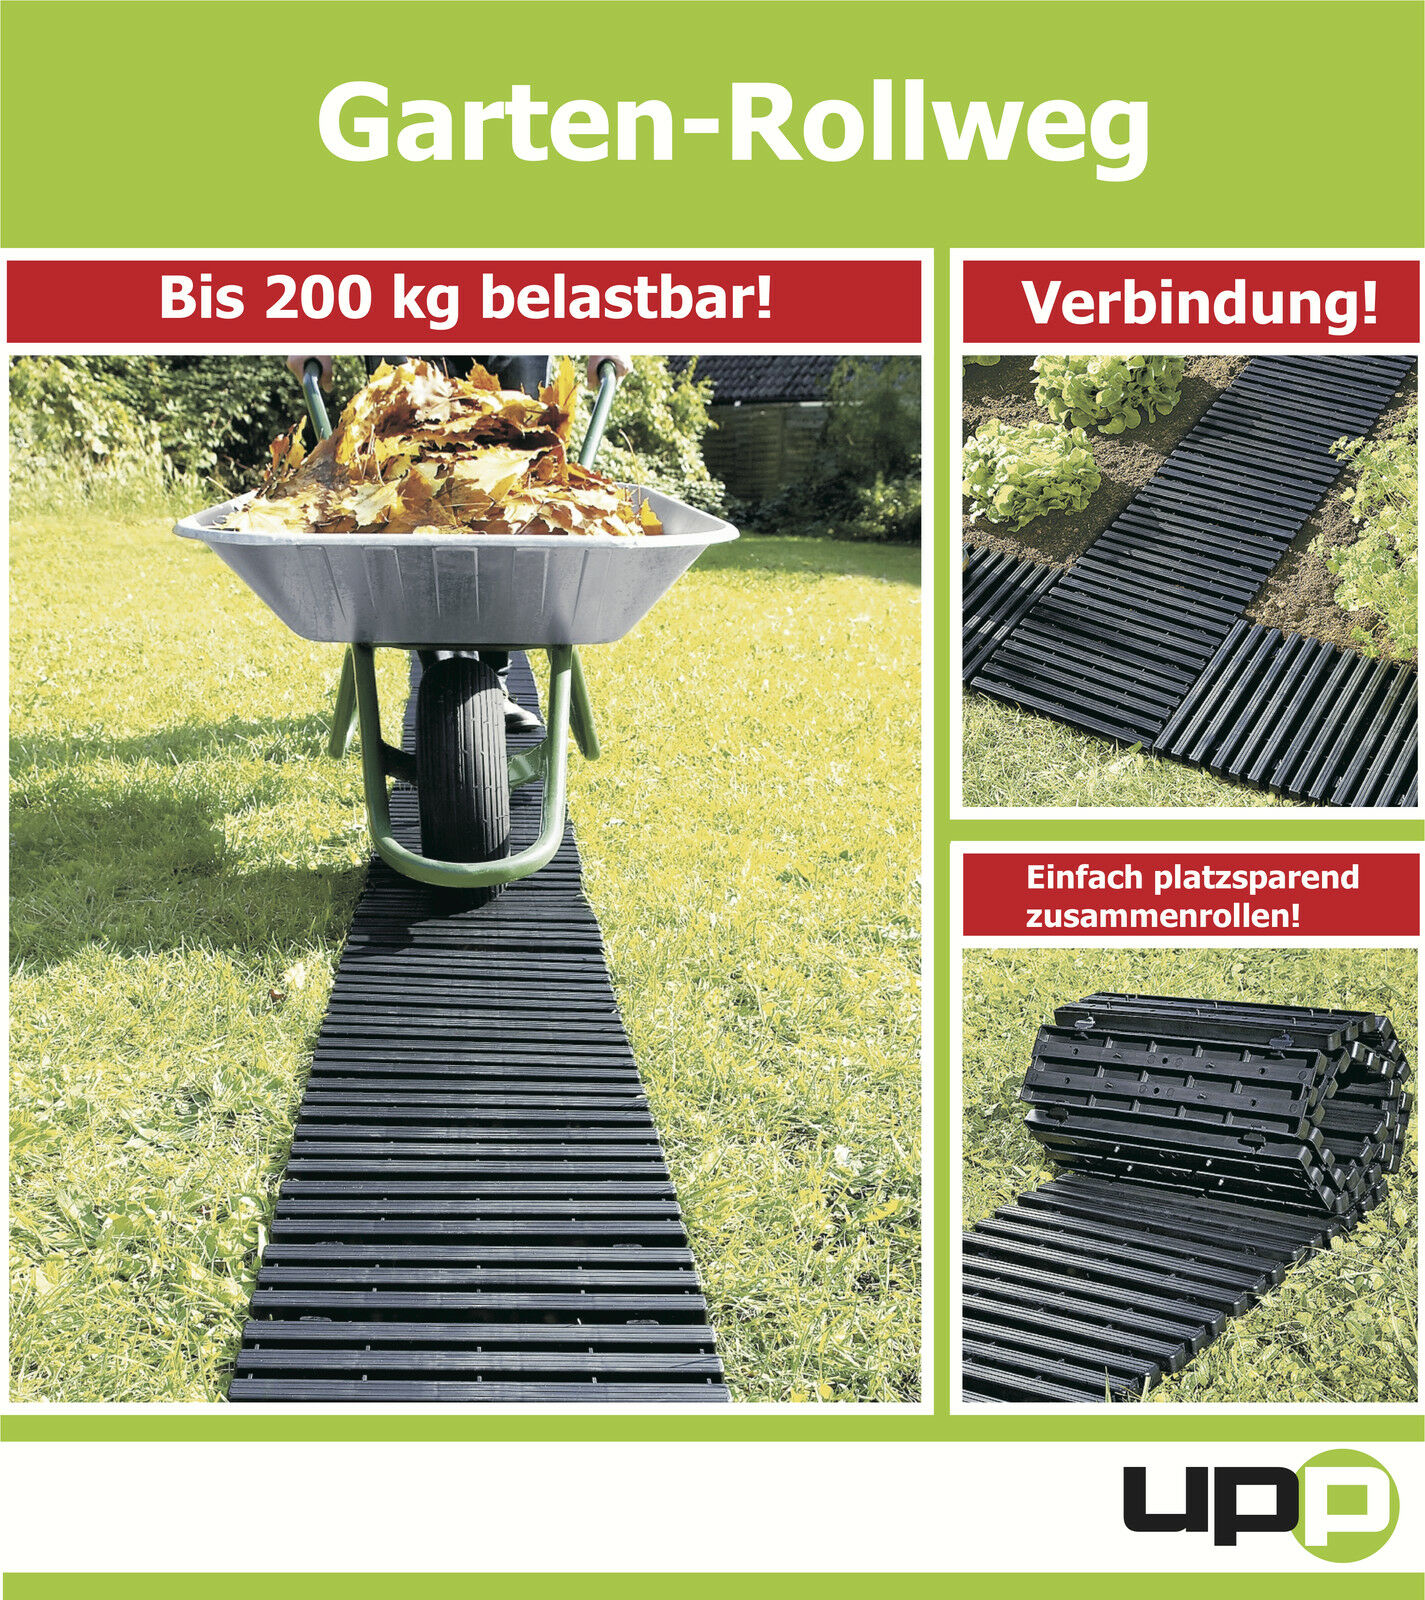 upp gartenplatten rollweg beetplatten gartenweg beet rasen 30x150cm eur 18 99. Black Bedroom Furniture Sets. Home Design Ideas